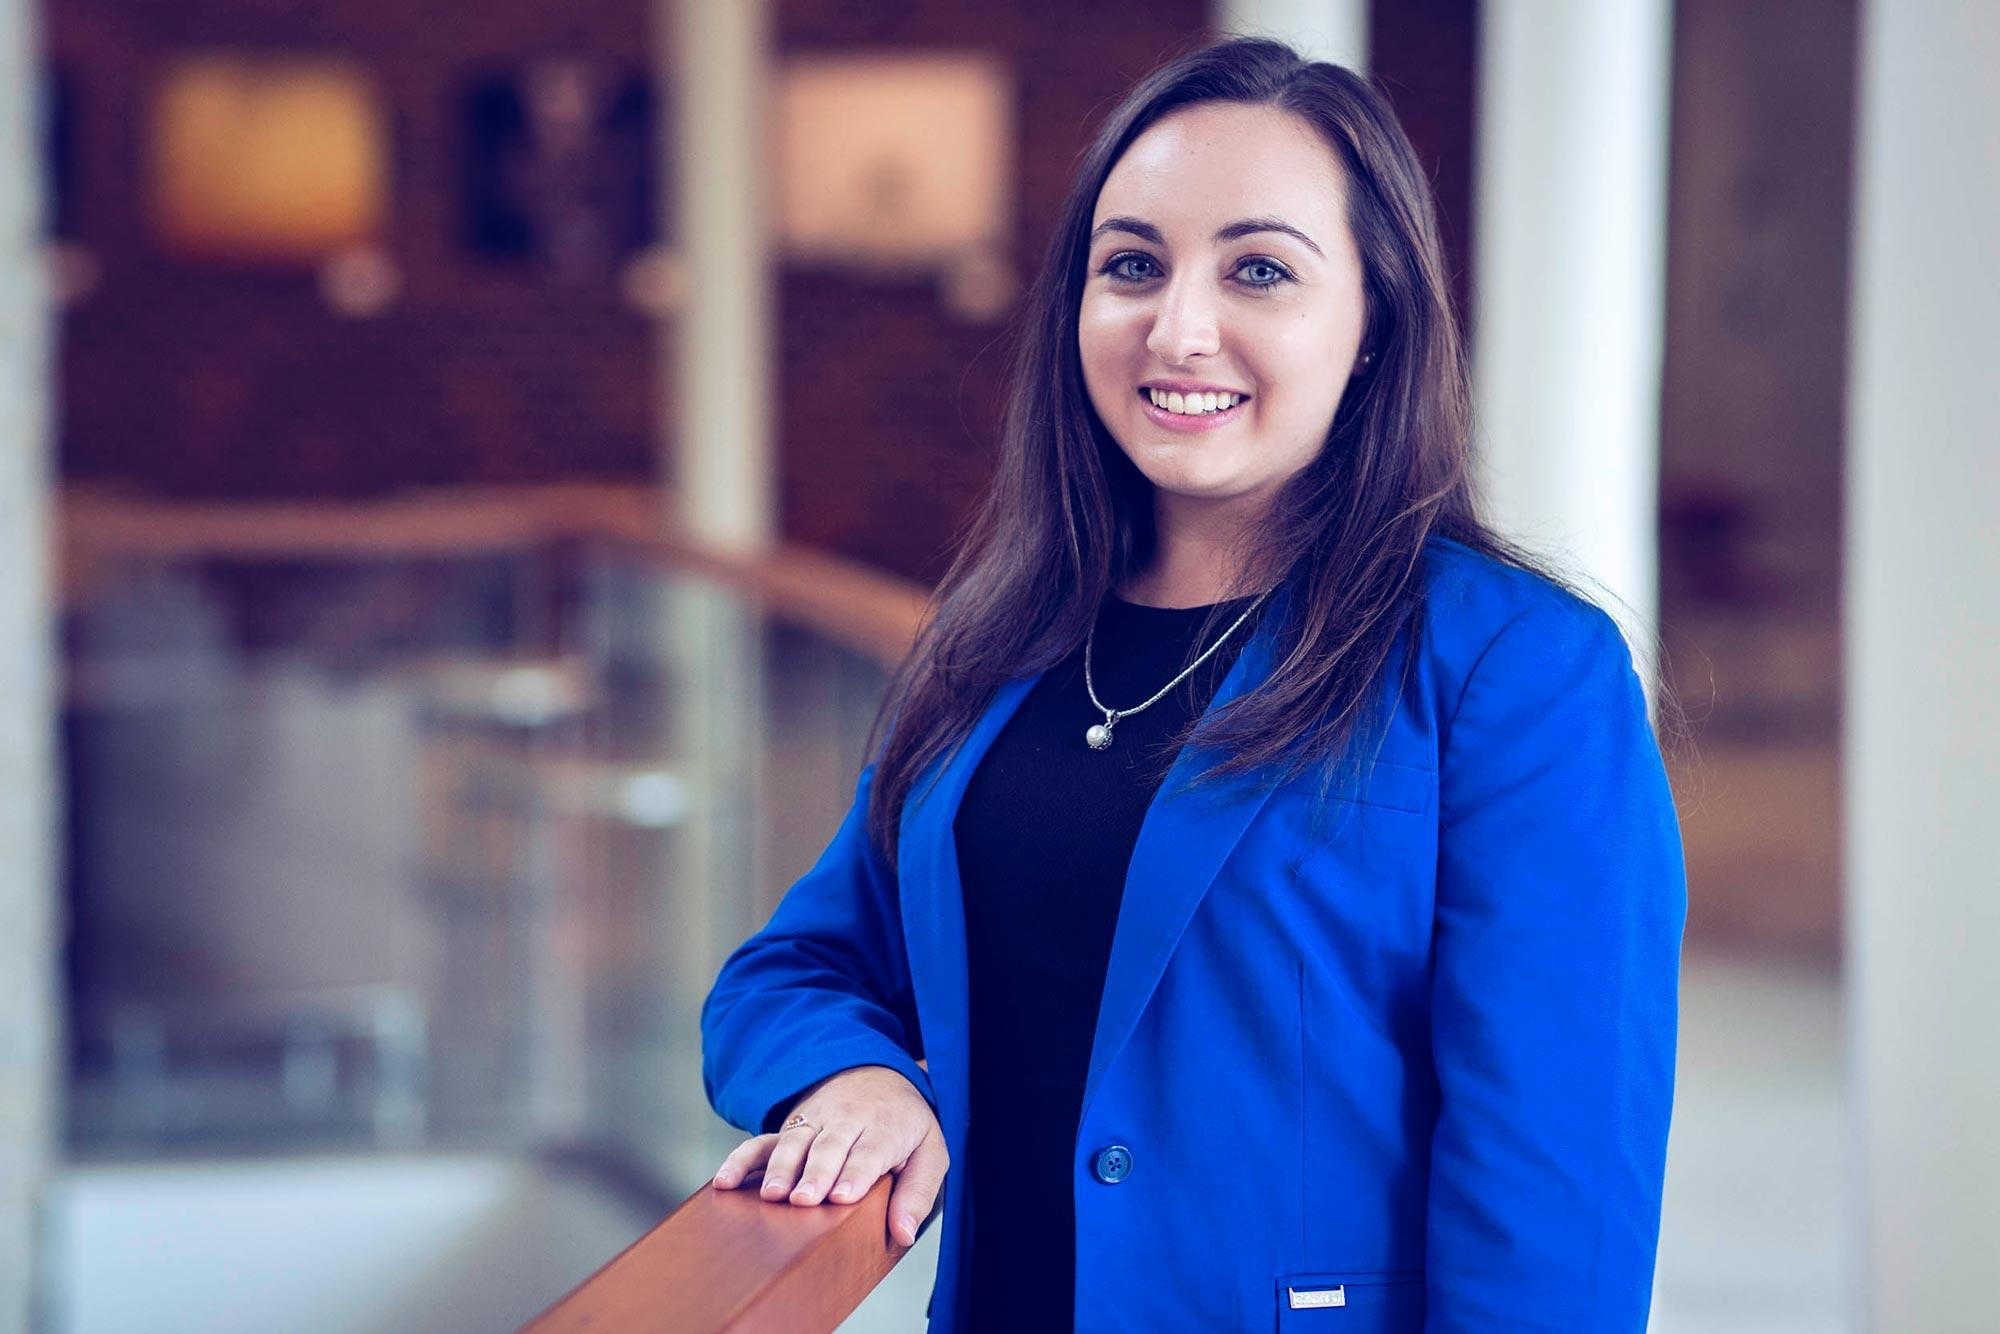 2013 UVA alumna Holly Rasheed, now 24, was Virginia's youngest lawyer when she became an assistant commonwealth's attorney in Augusta County.